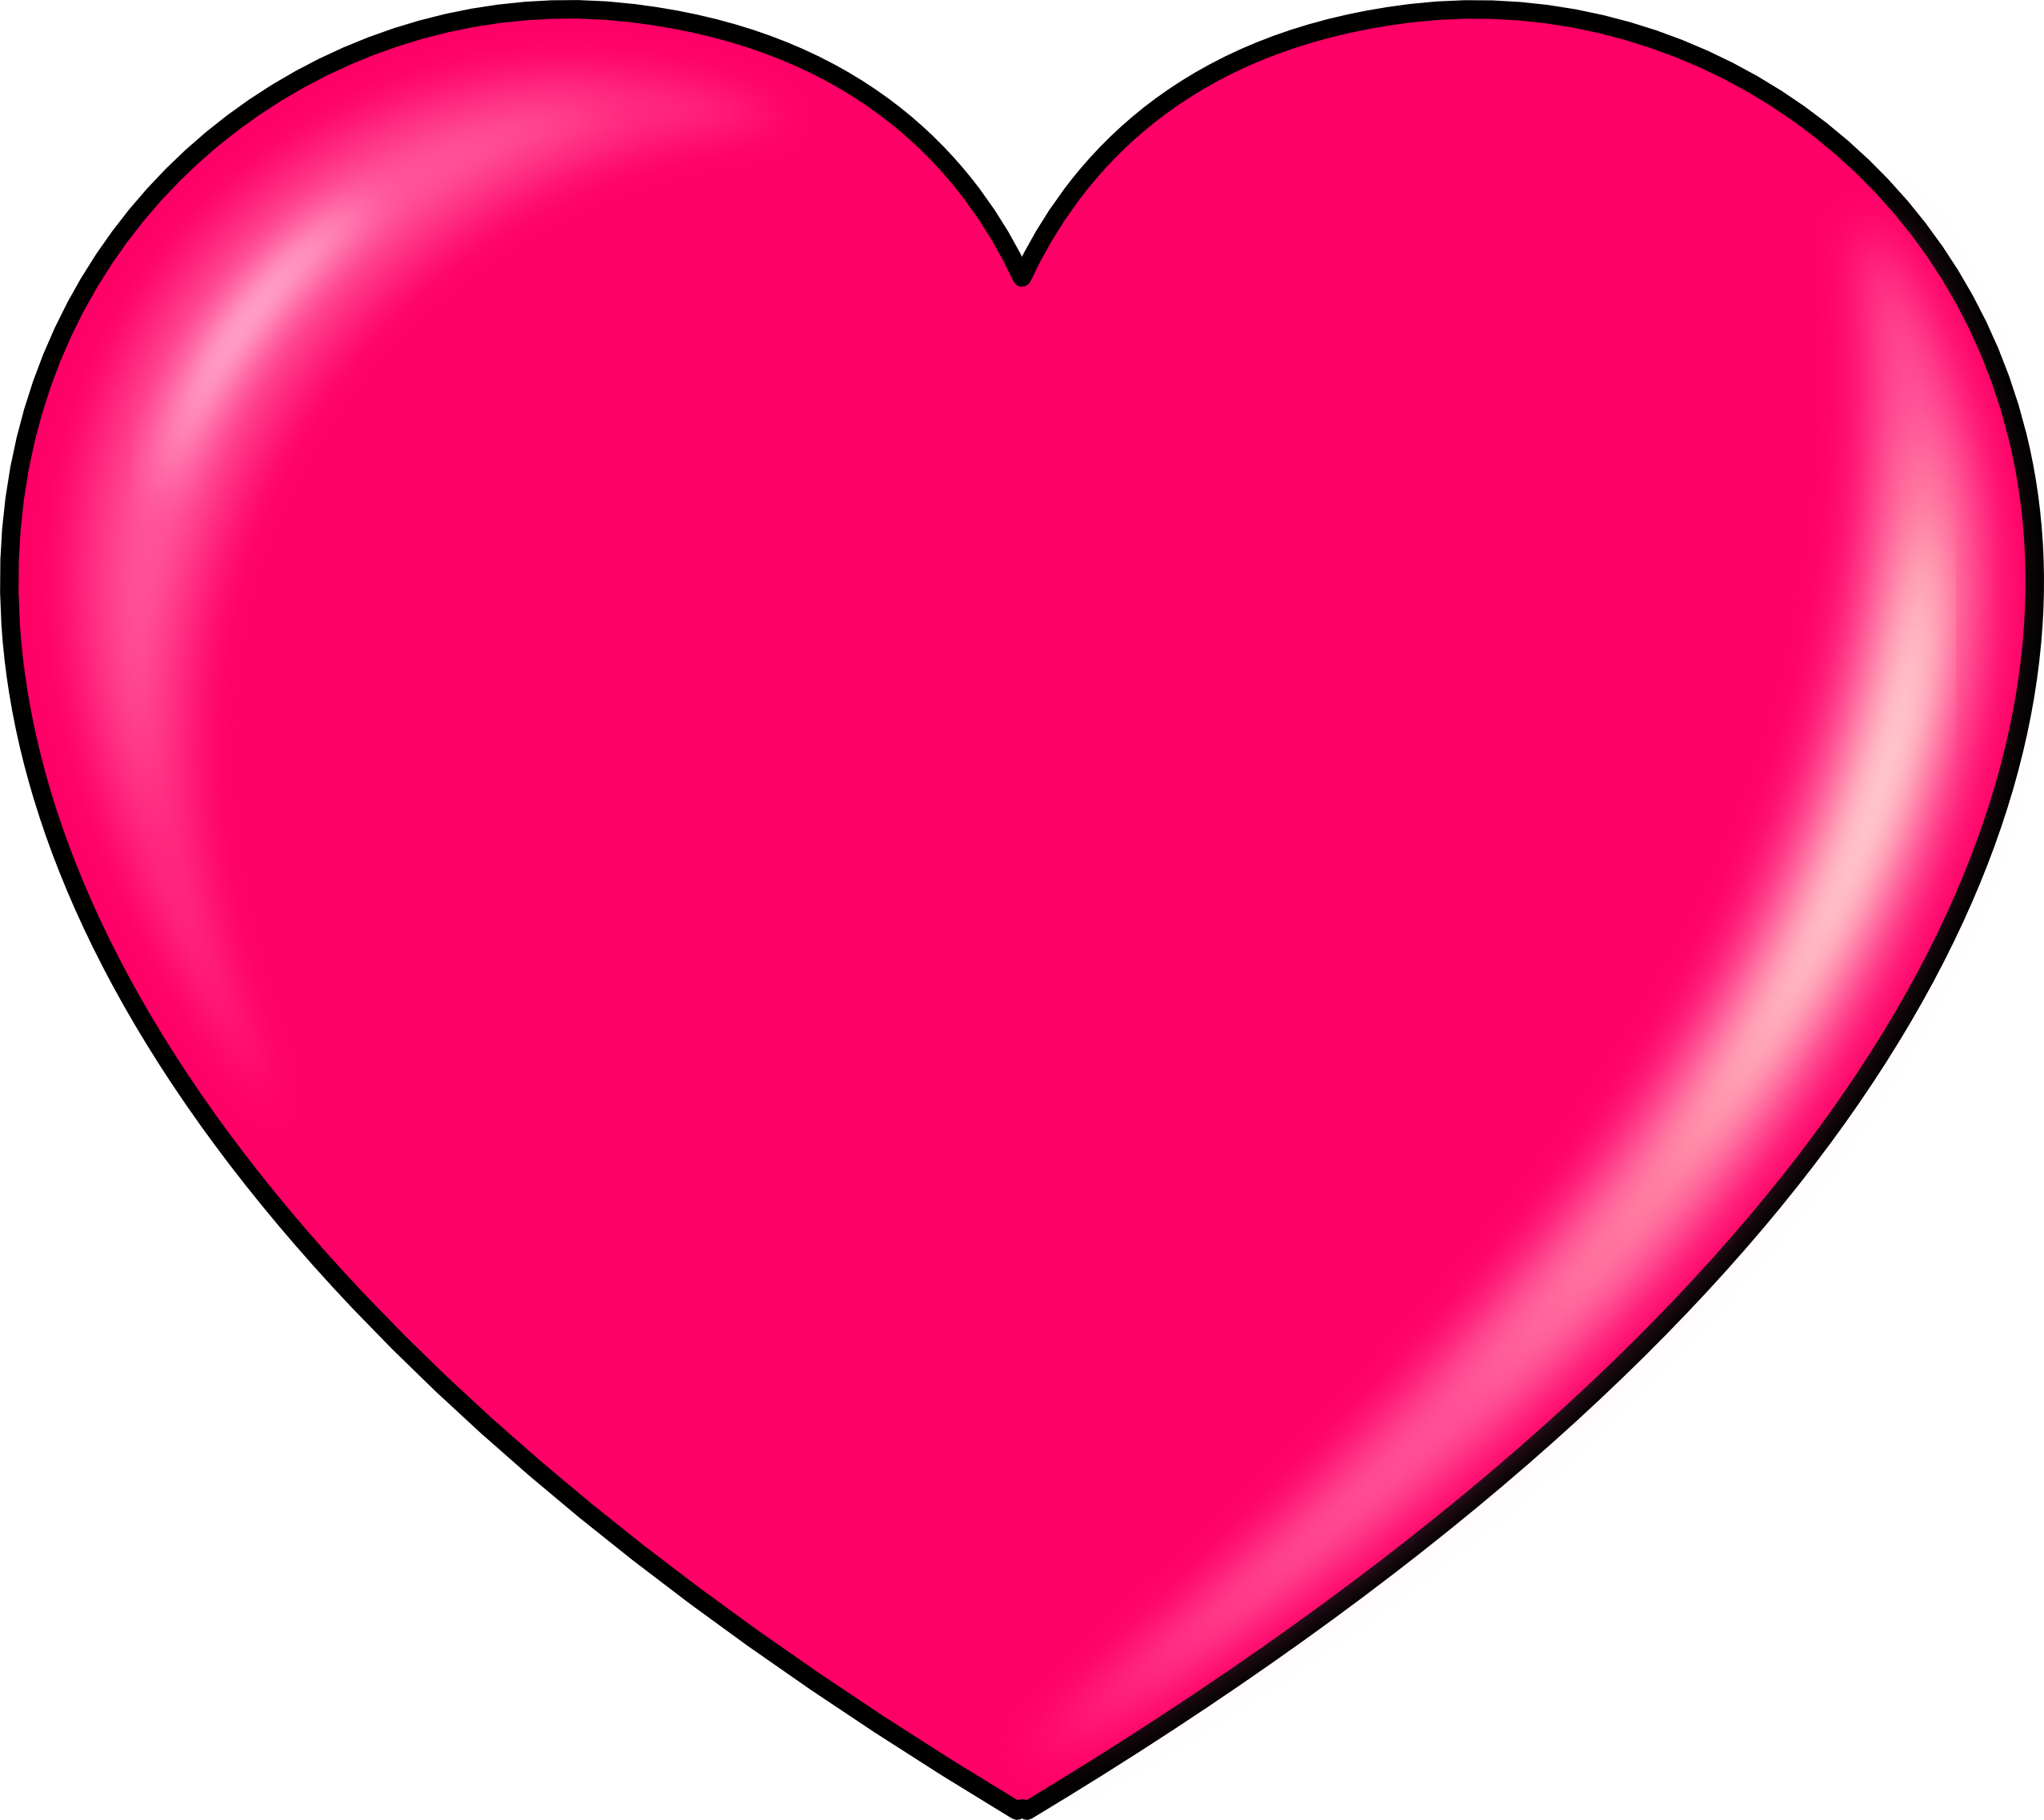 Heart PNG HD Transparent Background - 122738